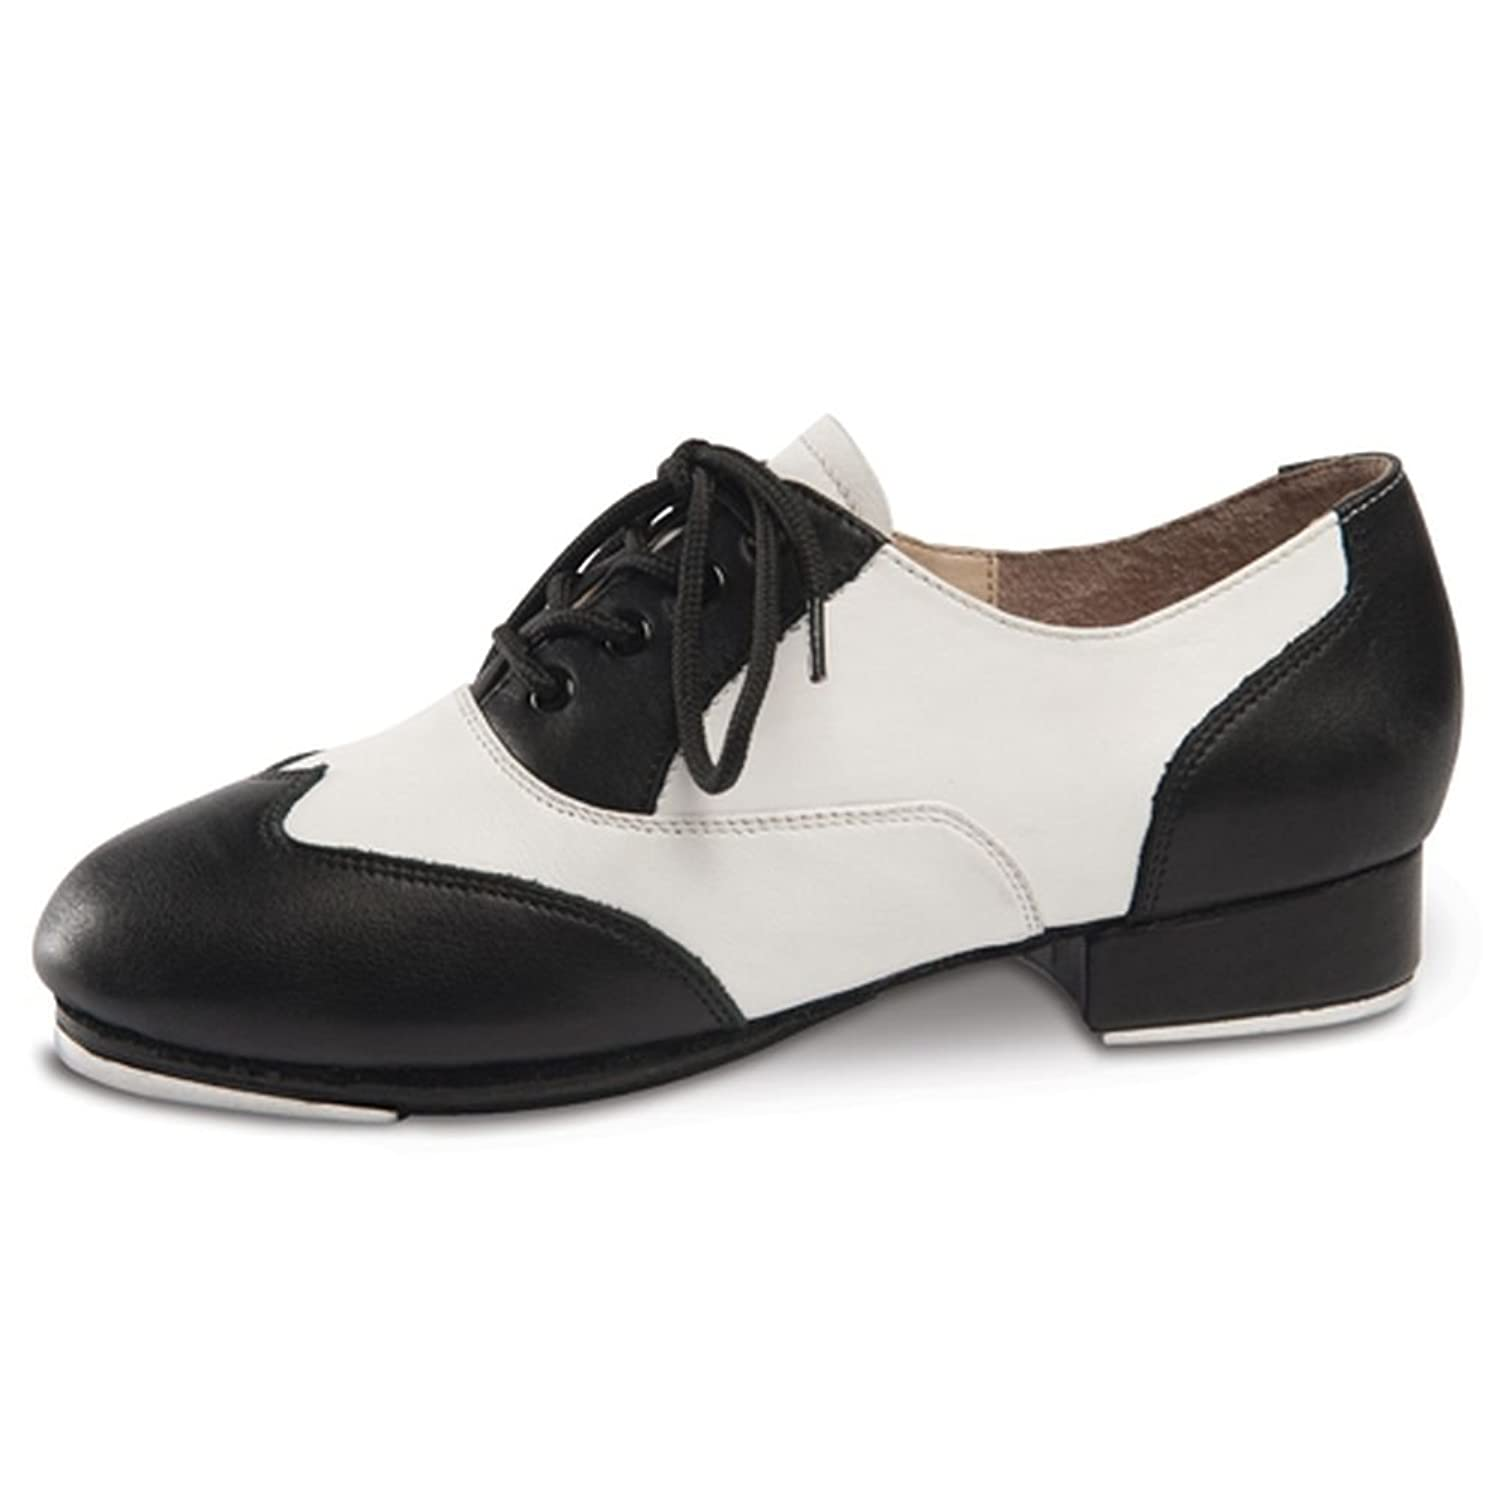 Pin Up Shoes- Heels, Pumps & Flats Danshuz Womens Black White Saddle Style Tap Dance Shoes Size 3-11 $119.95 AT vintagedancer.com